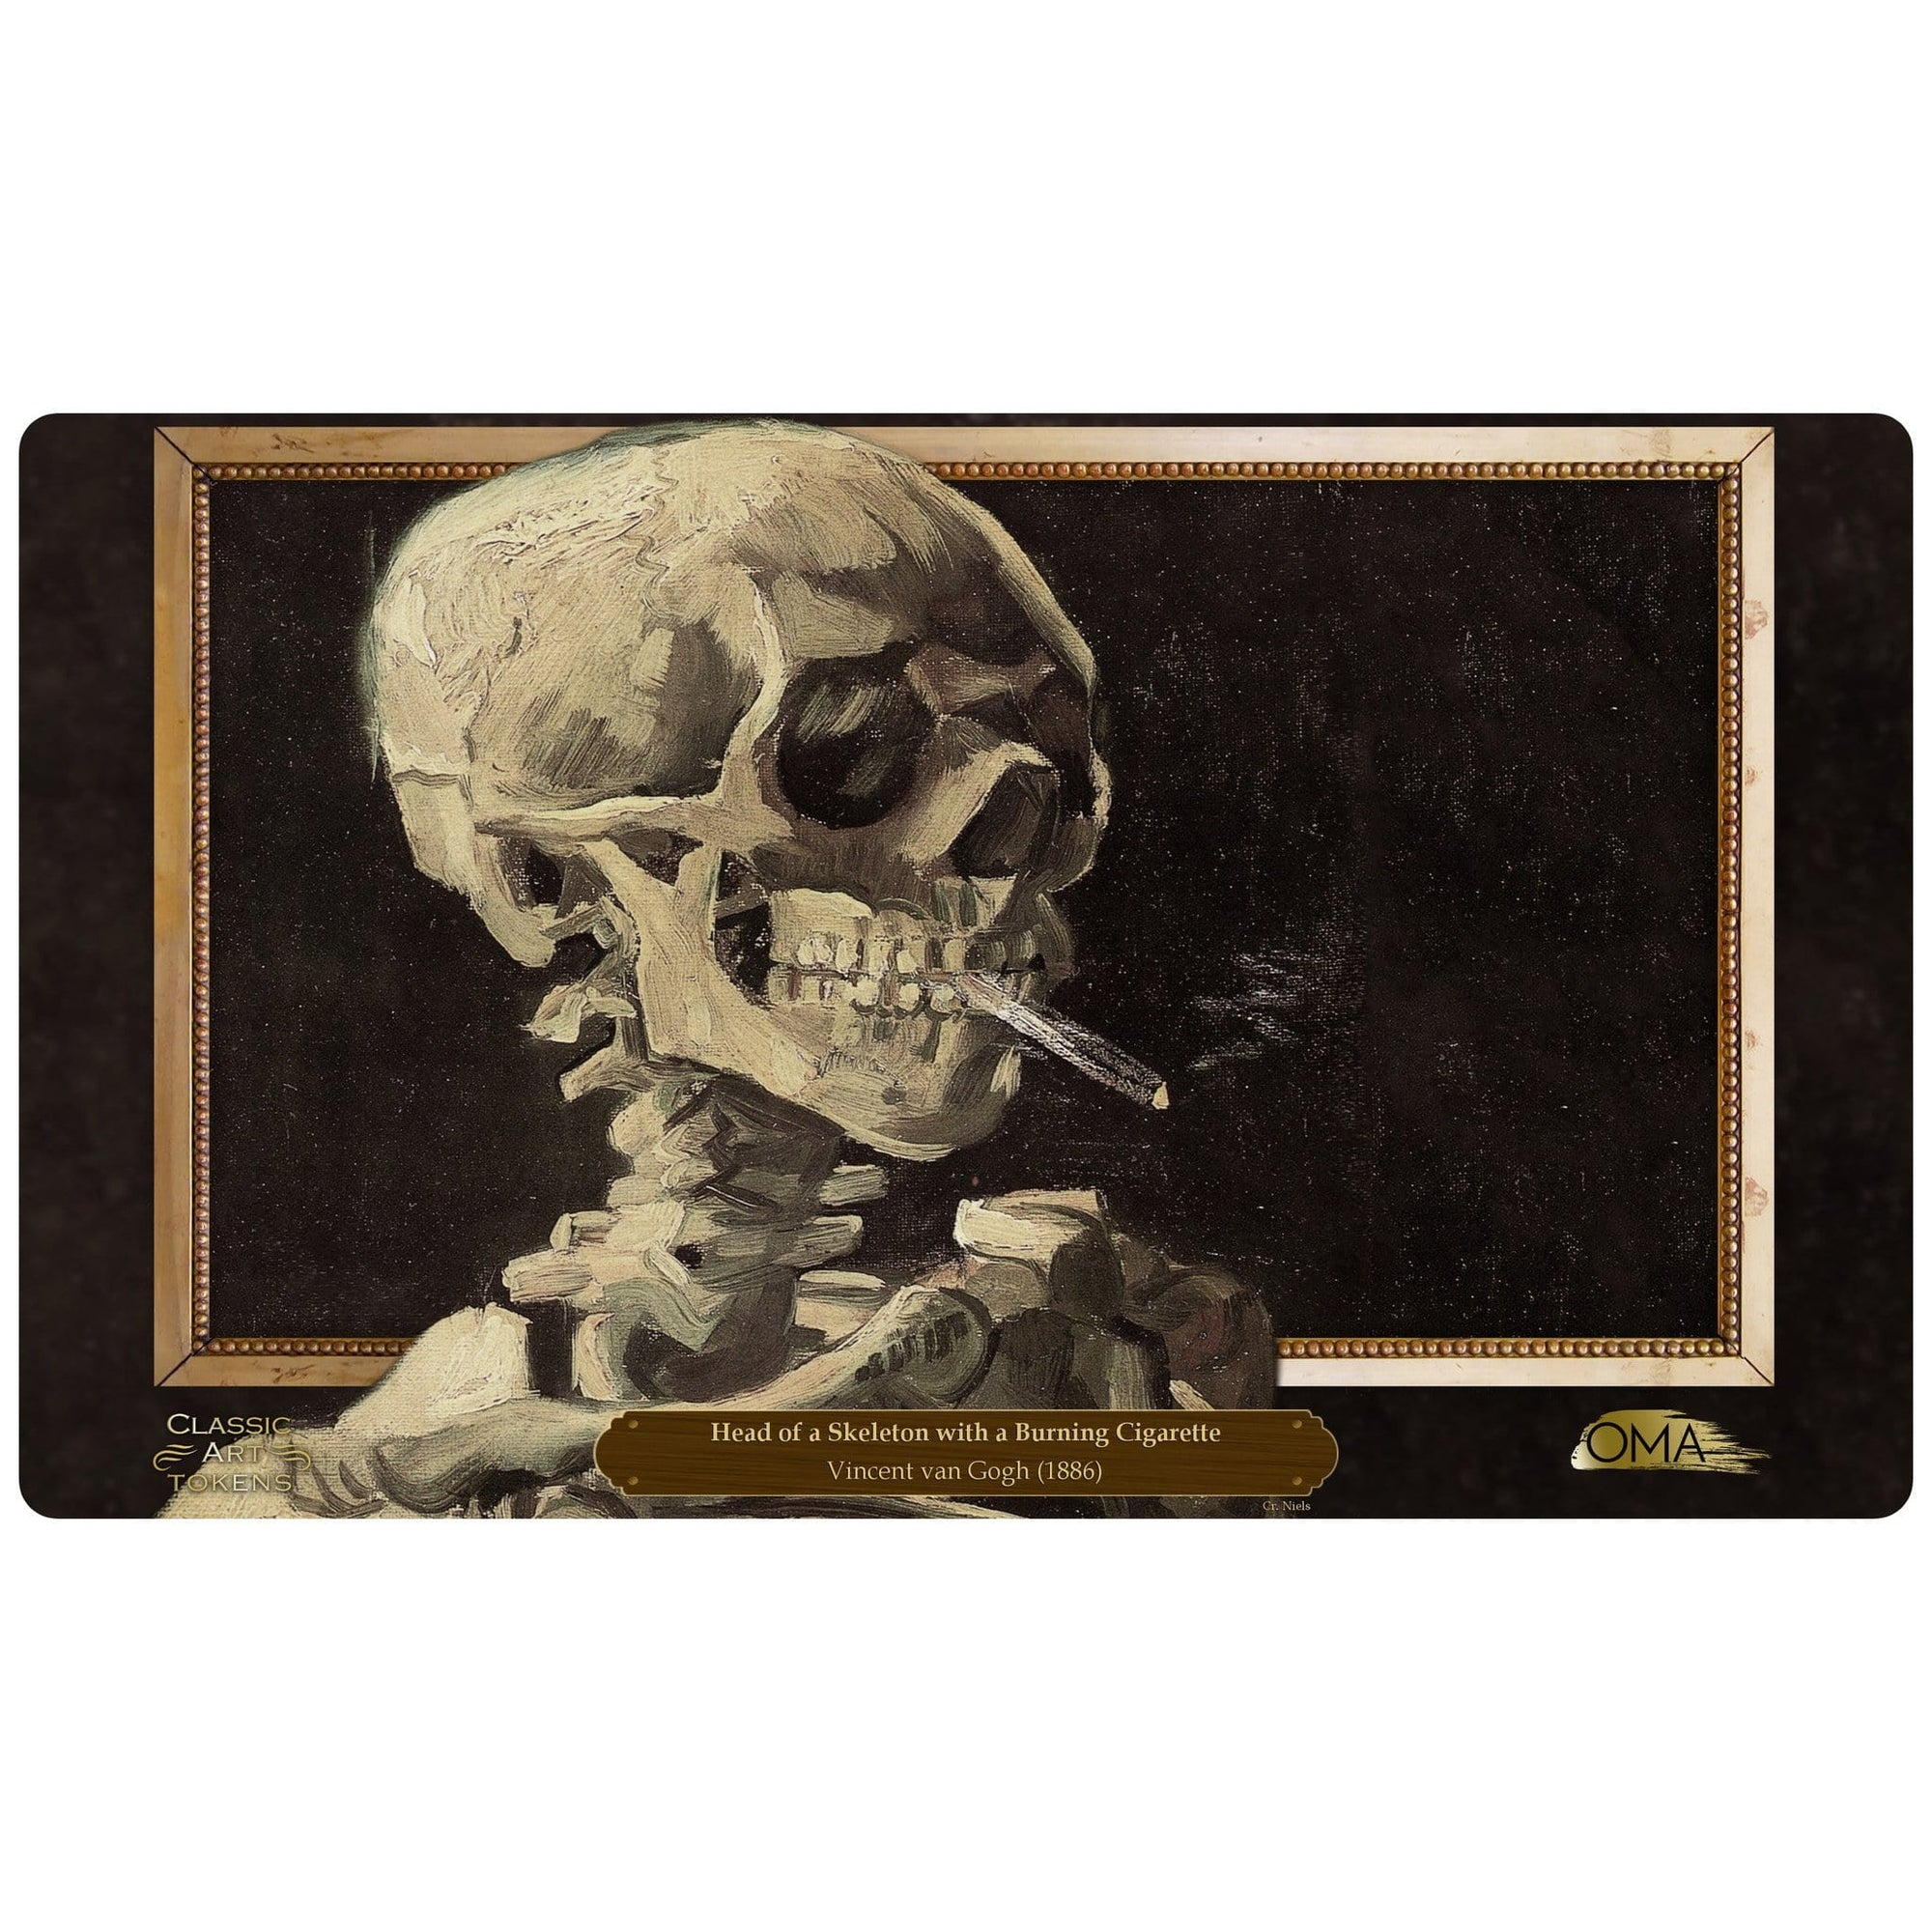 Zombie Playmat by Vincent van Gogh - Playmat - Original Magic Art - Accessories for Magic the Gathering and other card games